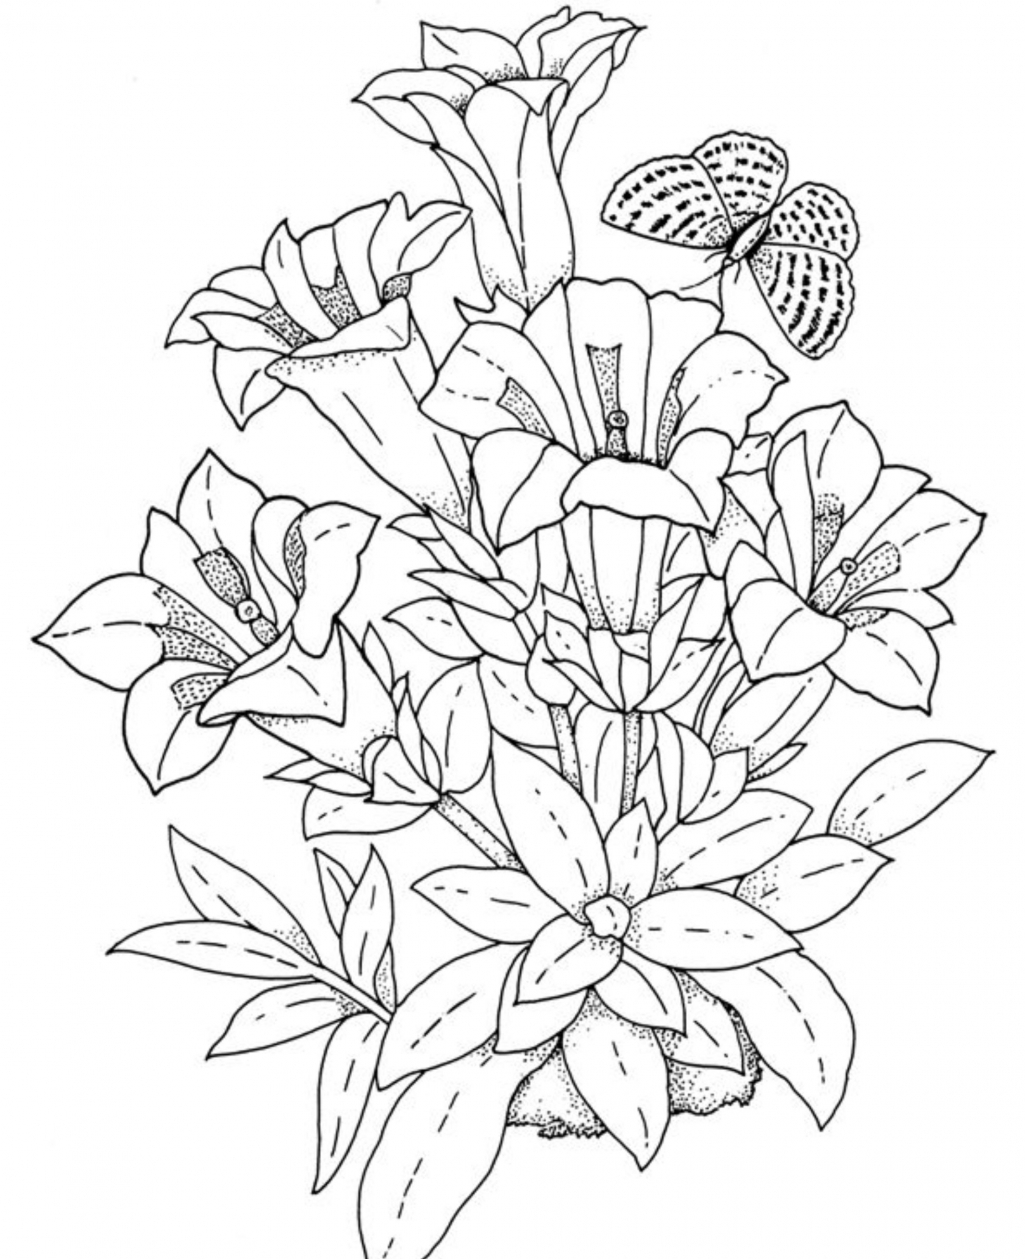 flower coloring page free printable flower coloring pages for kids page coloring flower